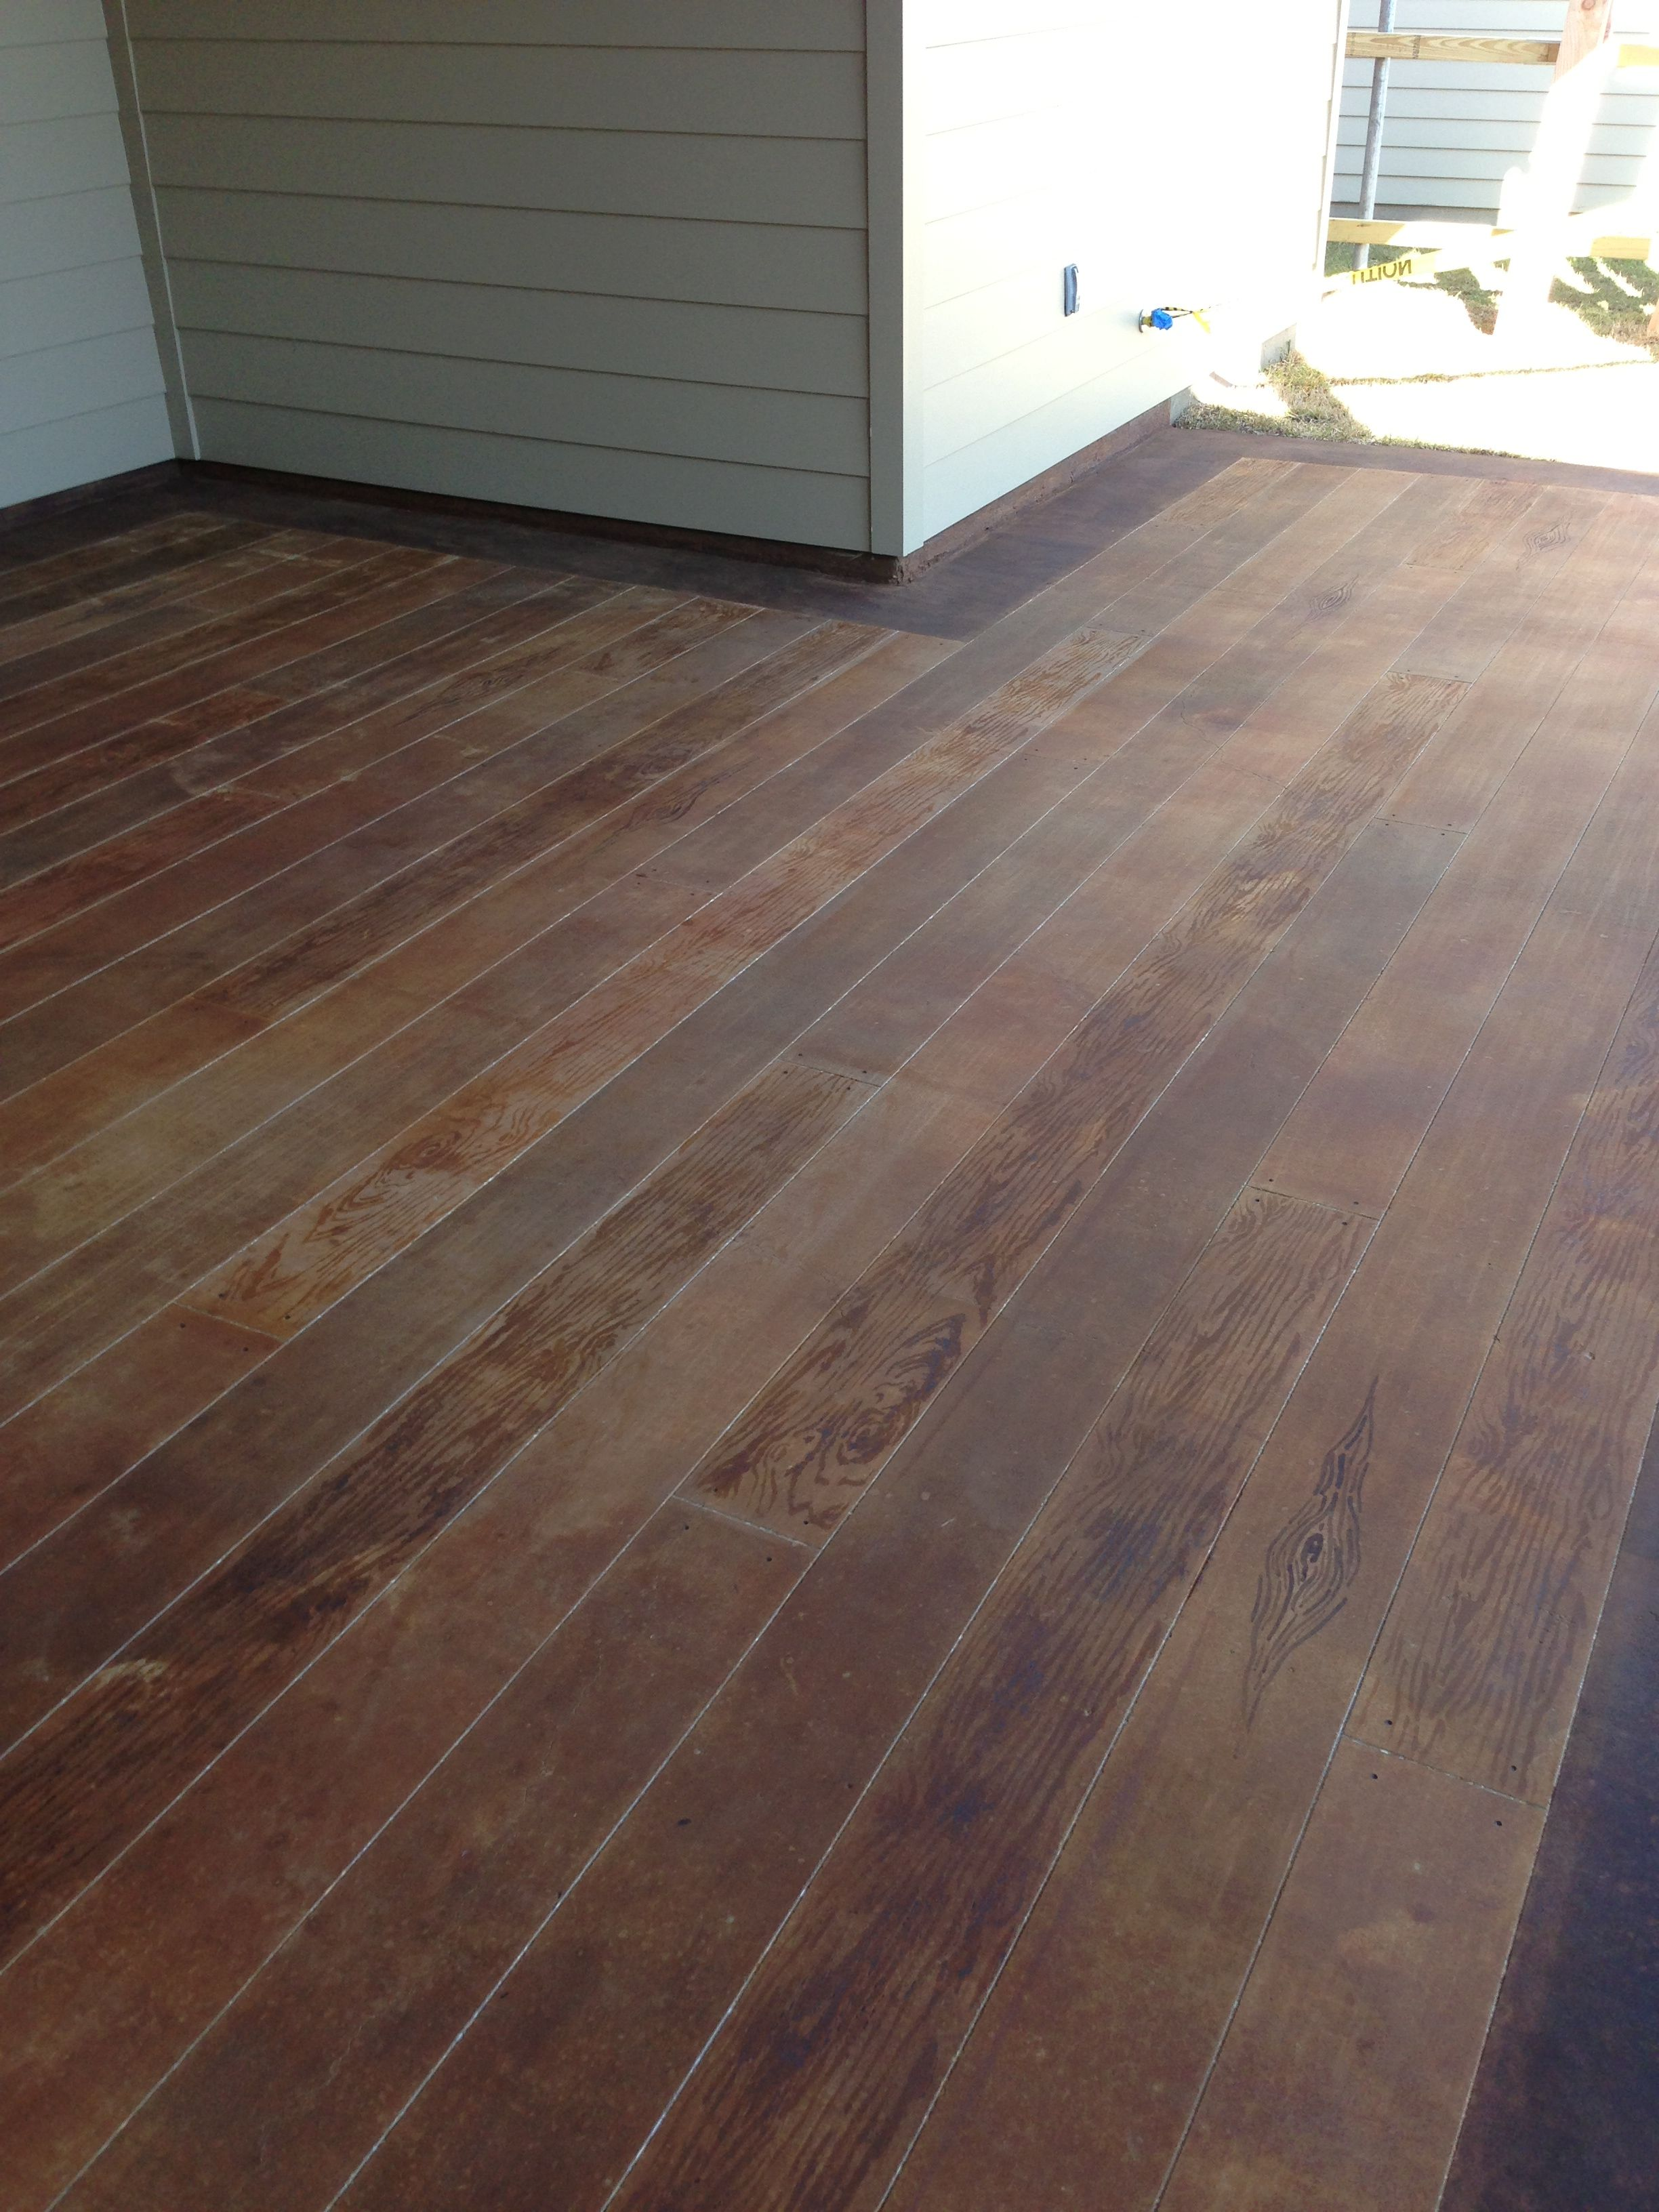 Concrete Wood Look - I want this for the back patio...concrete that ...